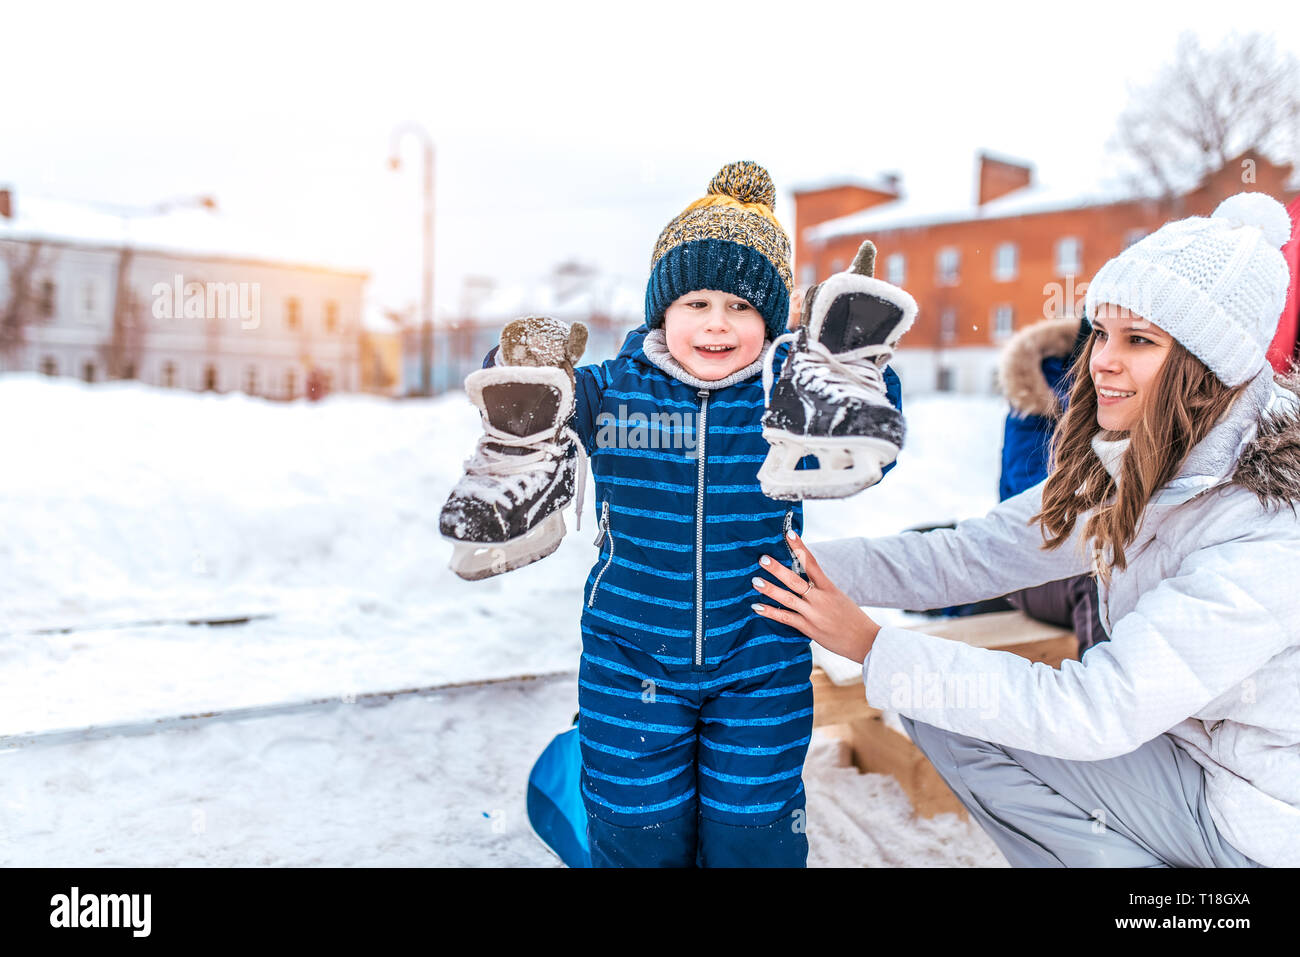 Little son, cheerful joyful boy of 4-6 years old, holds his skates his hands. Mom woman supports him. Caring a change of shoes at winter rink. Rest in - Stock Image